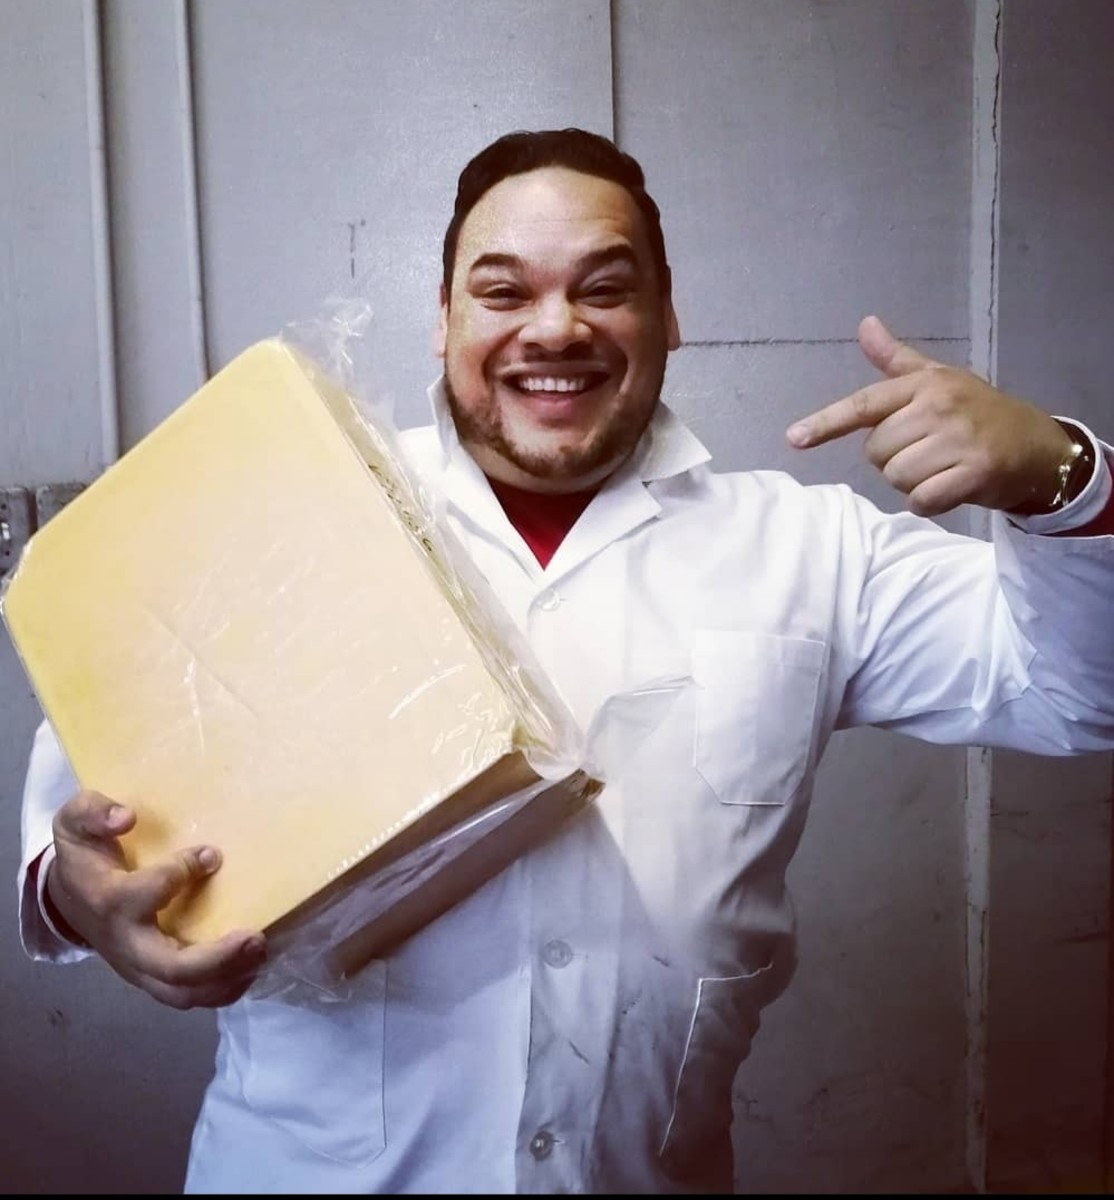 Andre Derrick judging cheese at the British Empire Cheese Show in 2019